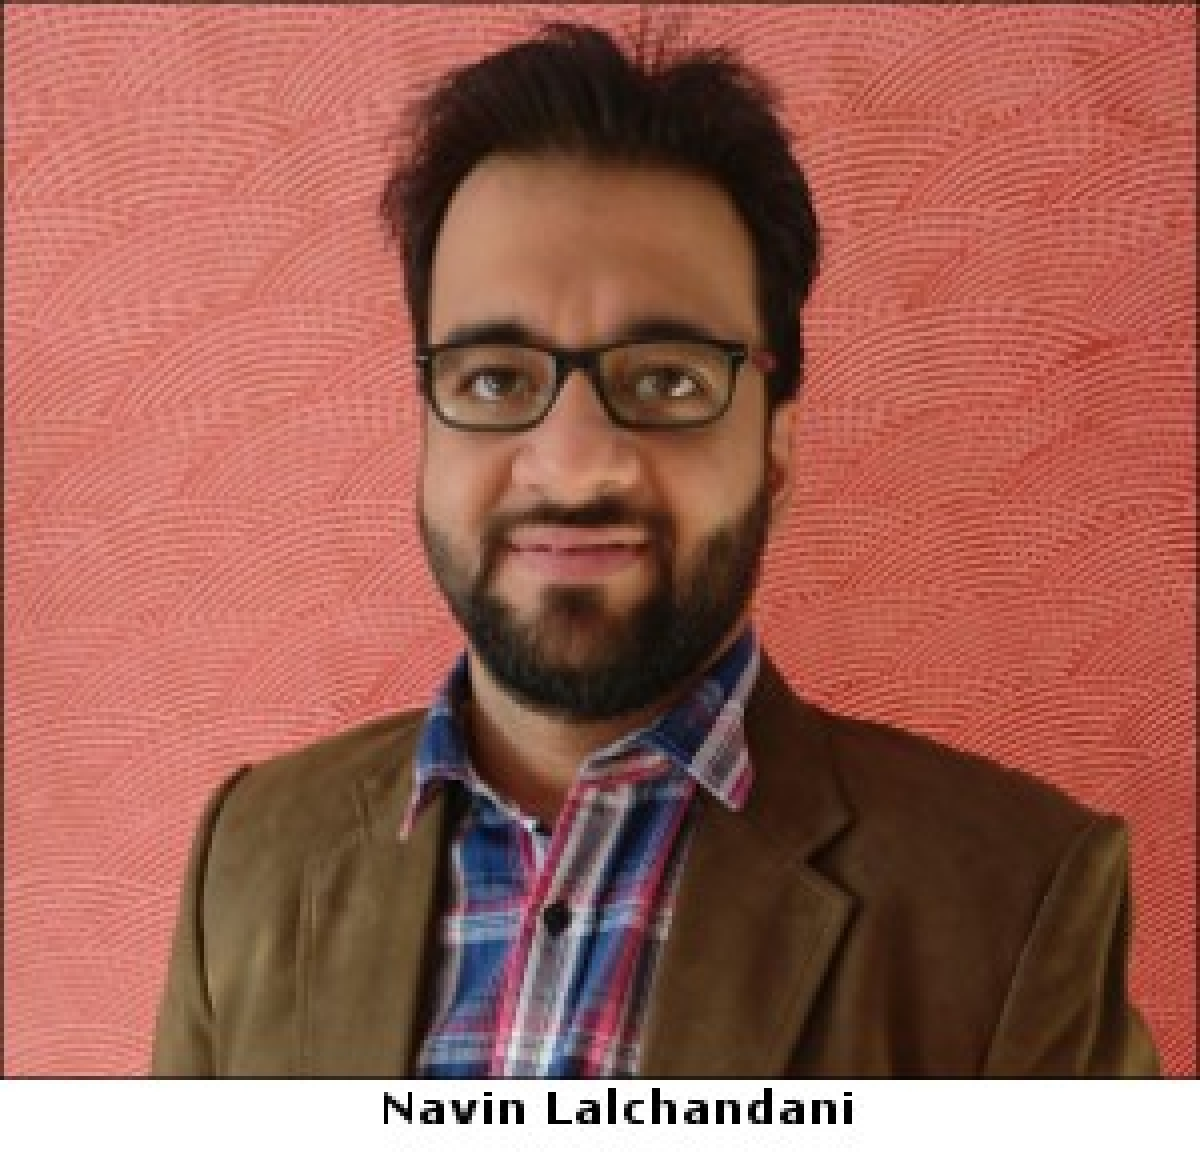 Navin Lalchandani joins Starcom India as Vice-President, Buying